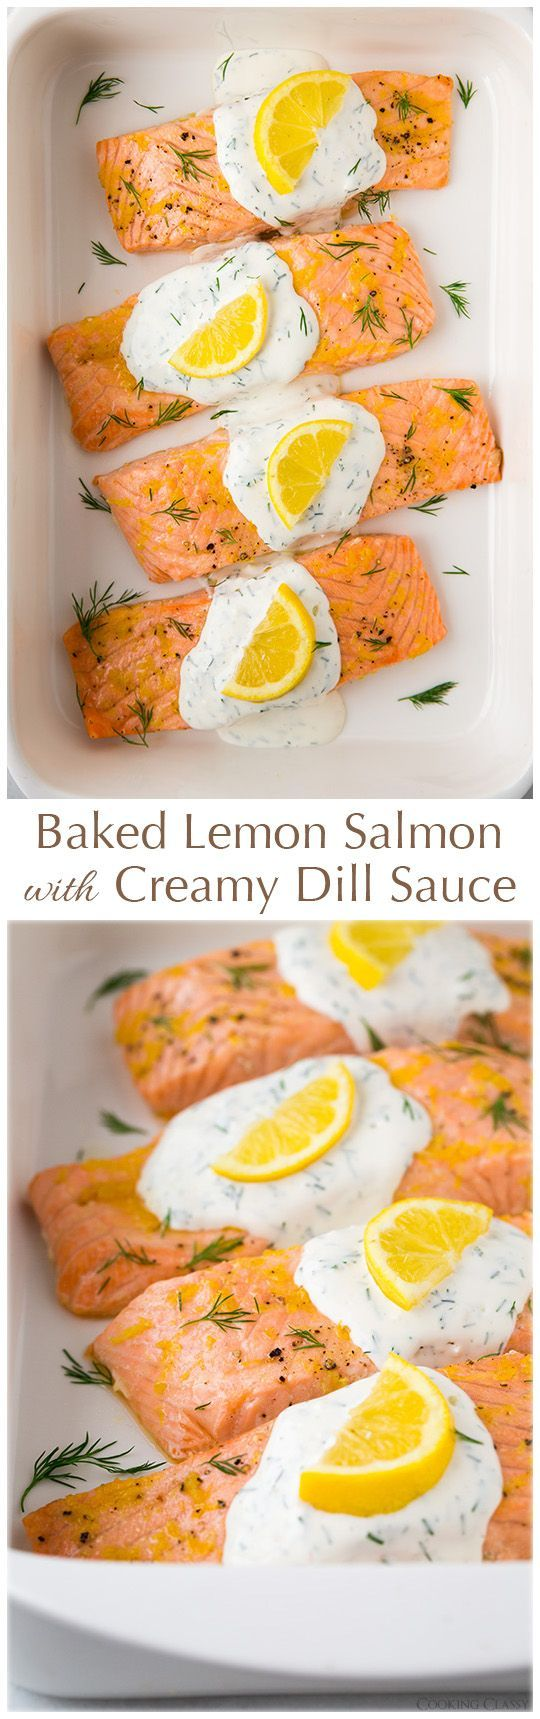 Baked Lemon Salmon with Creamy Dill Sauce – this salmon is AWESOME and it's totally healthy! It has gotten great reviews!